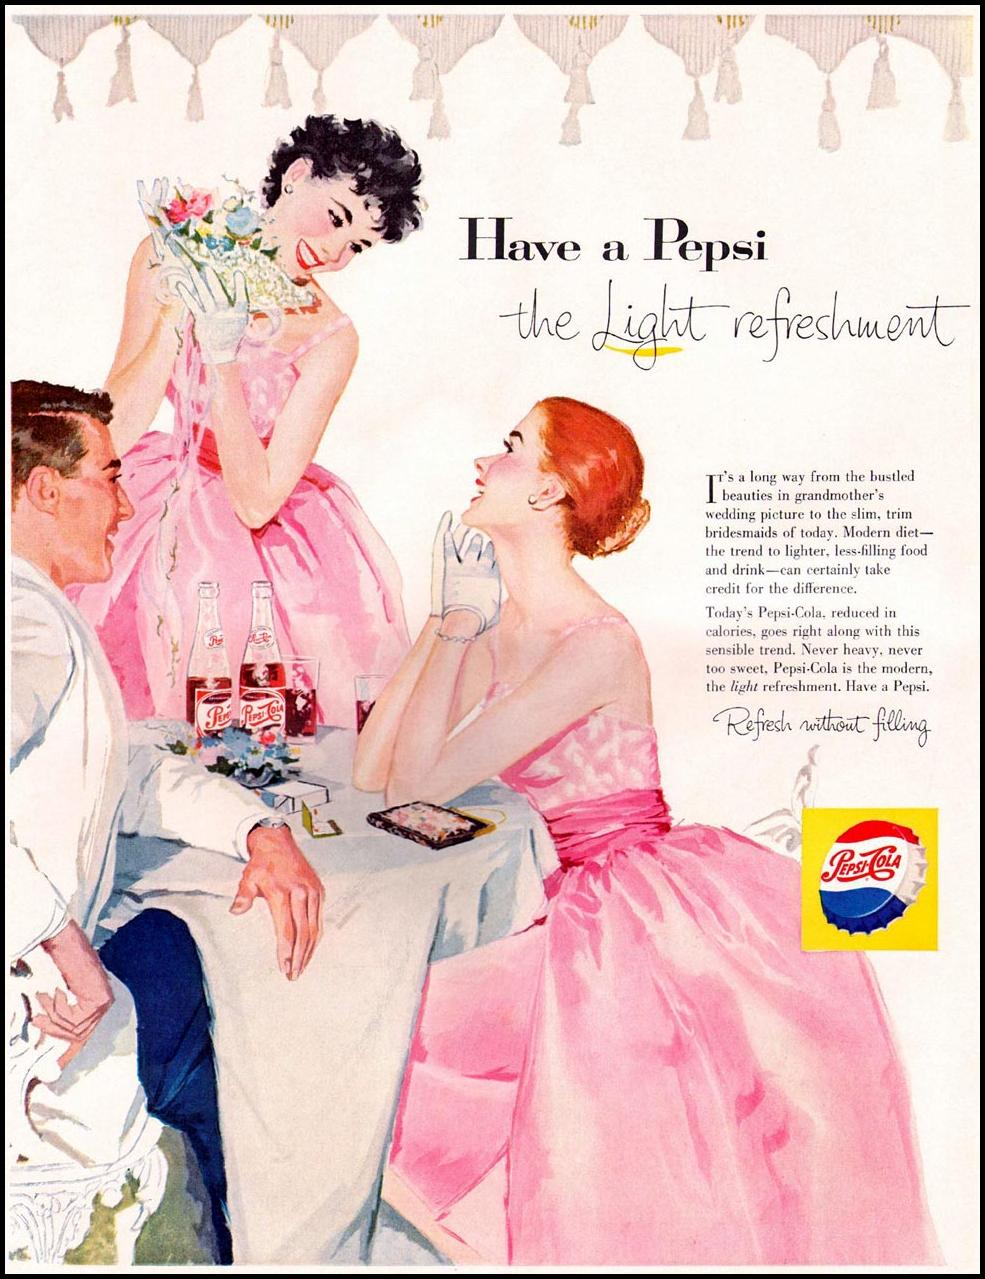 PEPSI-COLA LIFE 06/24/1957 INSIDE FRONT